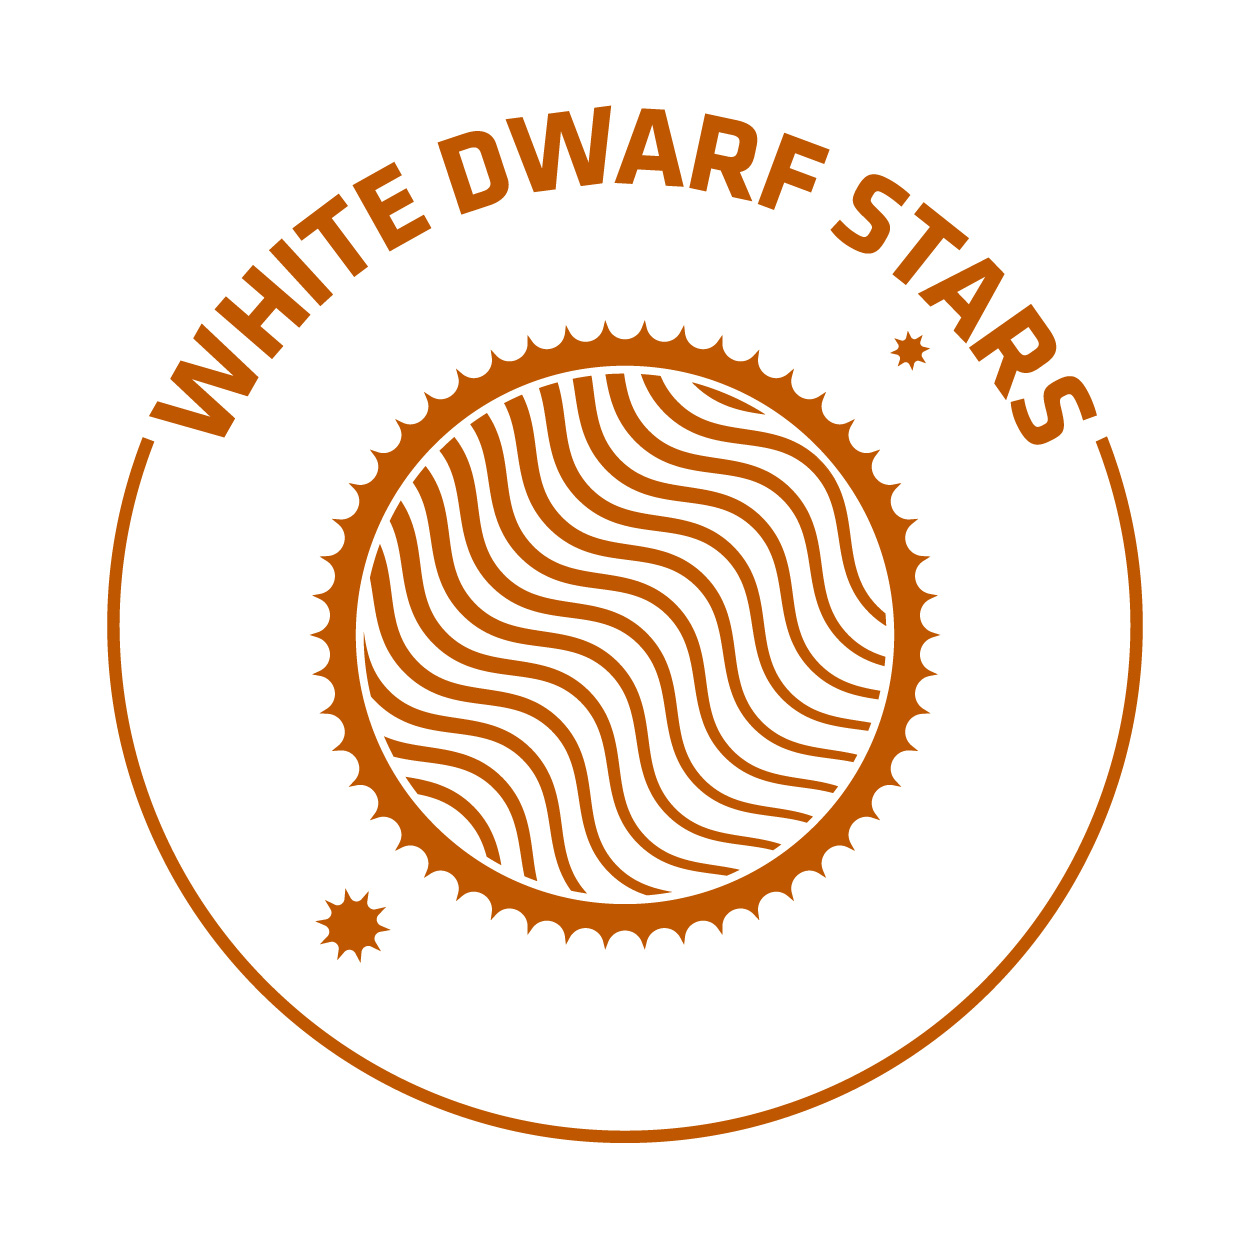 white dwarf stars RGB orange nickname